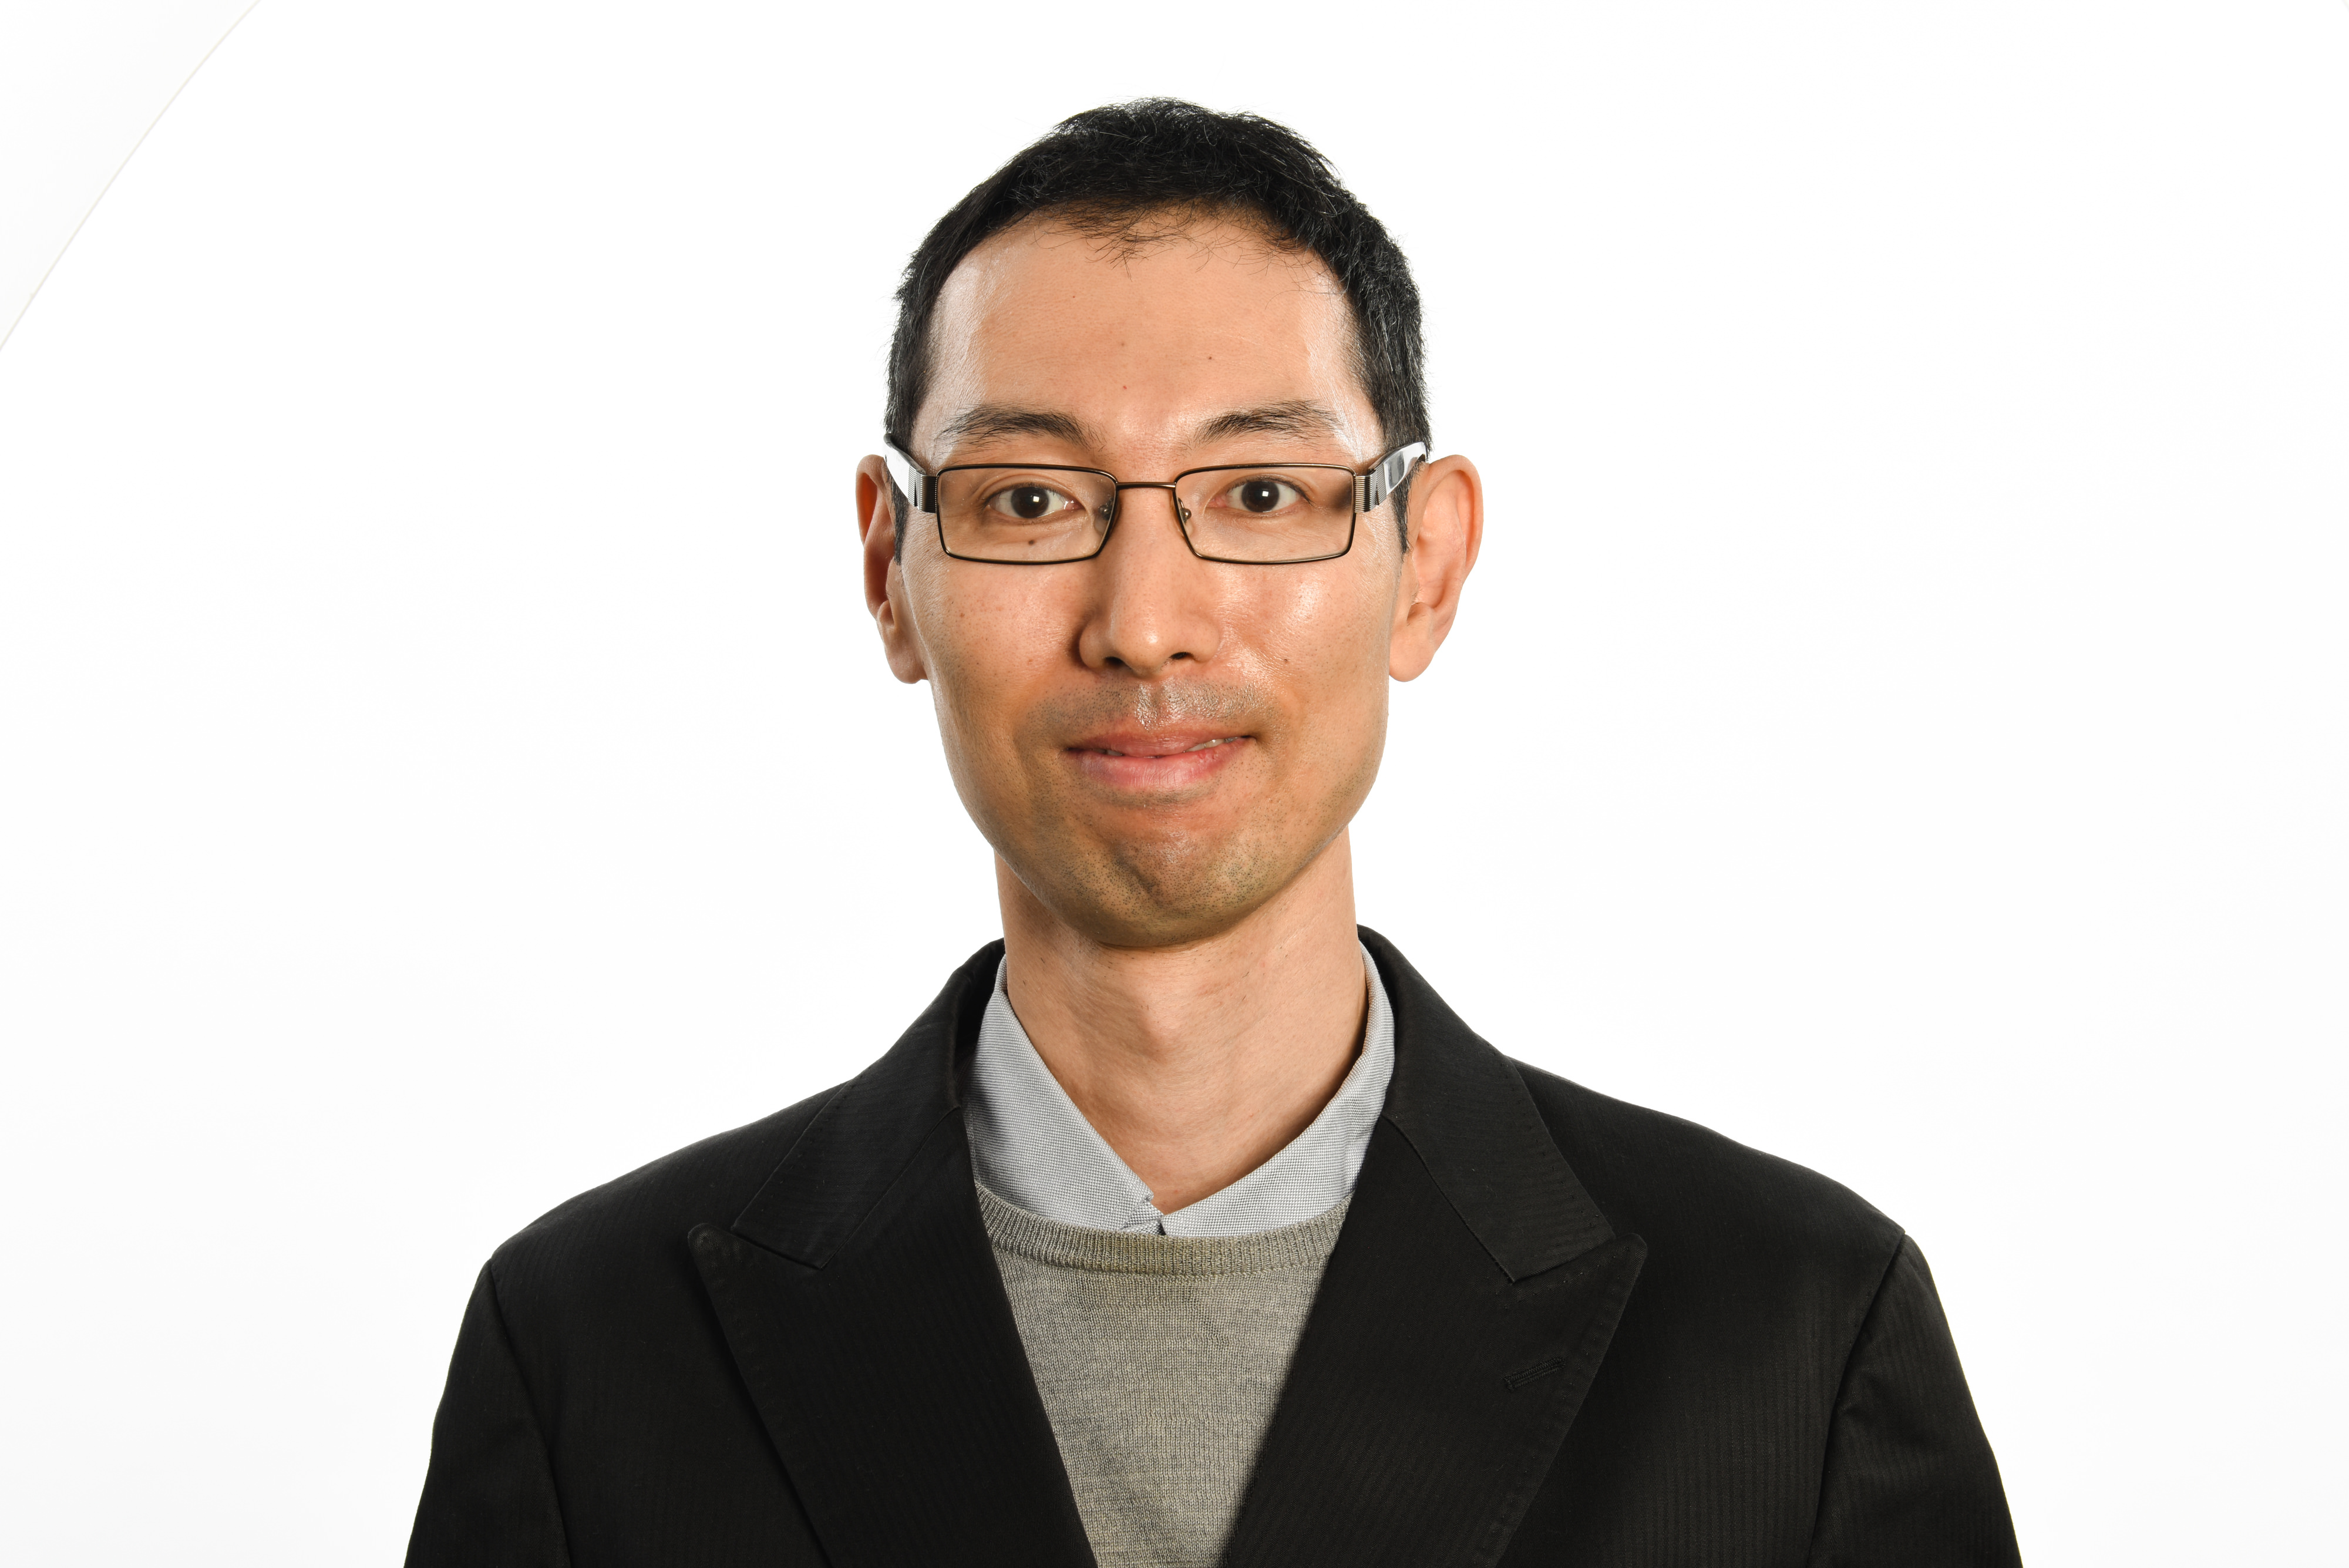 Visiting researcher: Welcome to Dr Yusuke Hioka